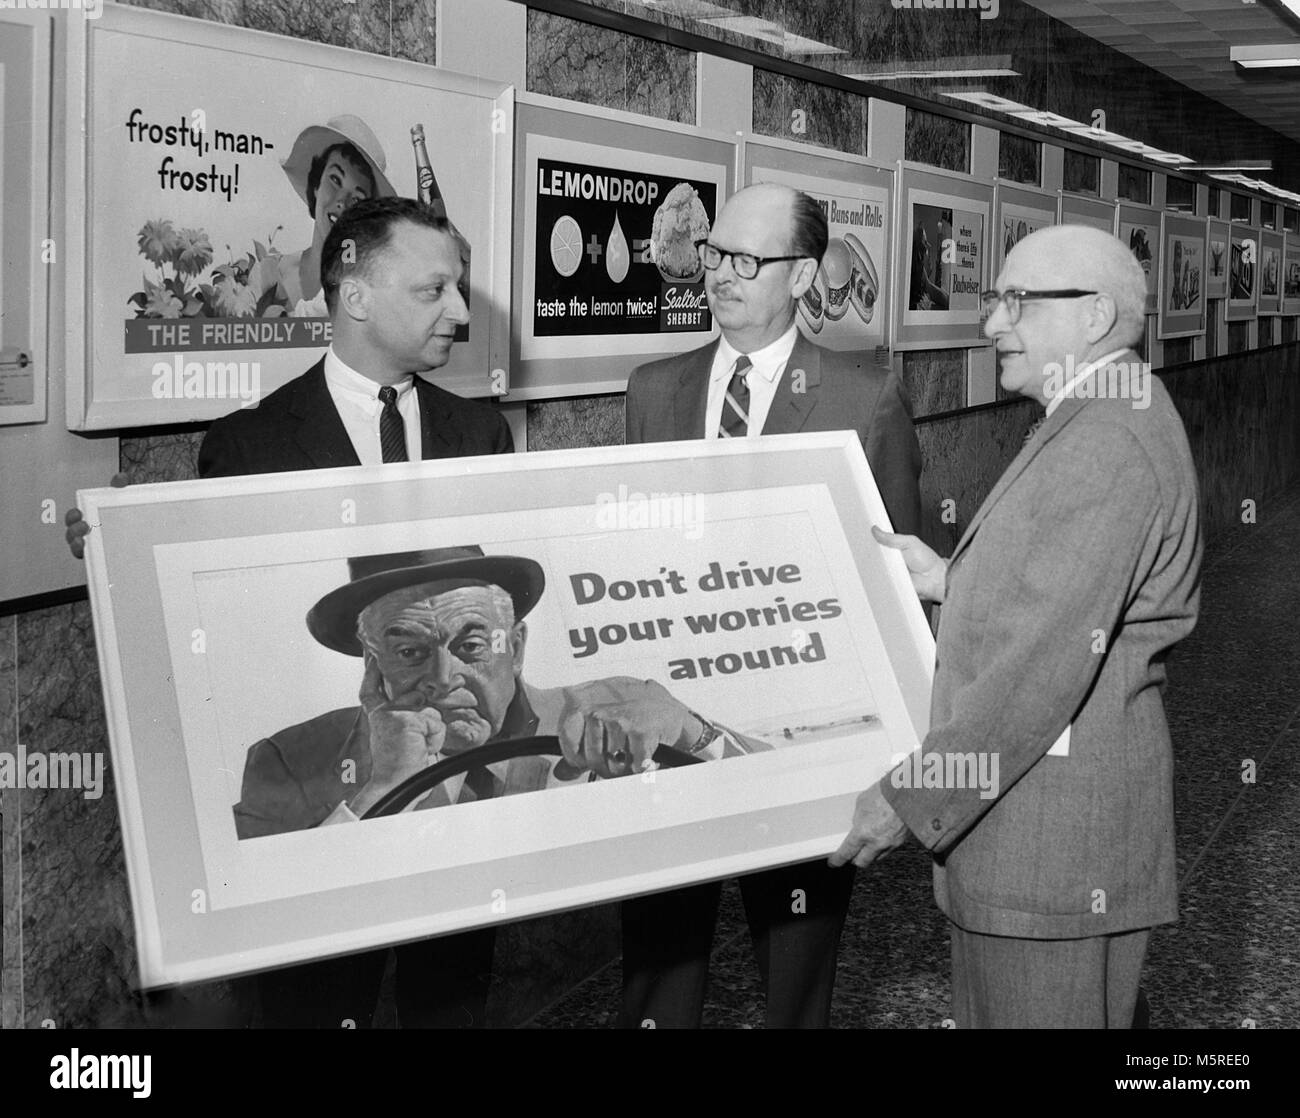 State employees display a public service message on a billboard to promote traffic safety in Chicago, 1960. - Stock Image